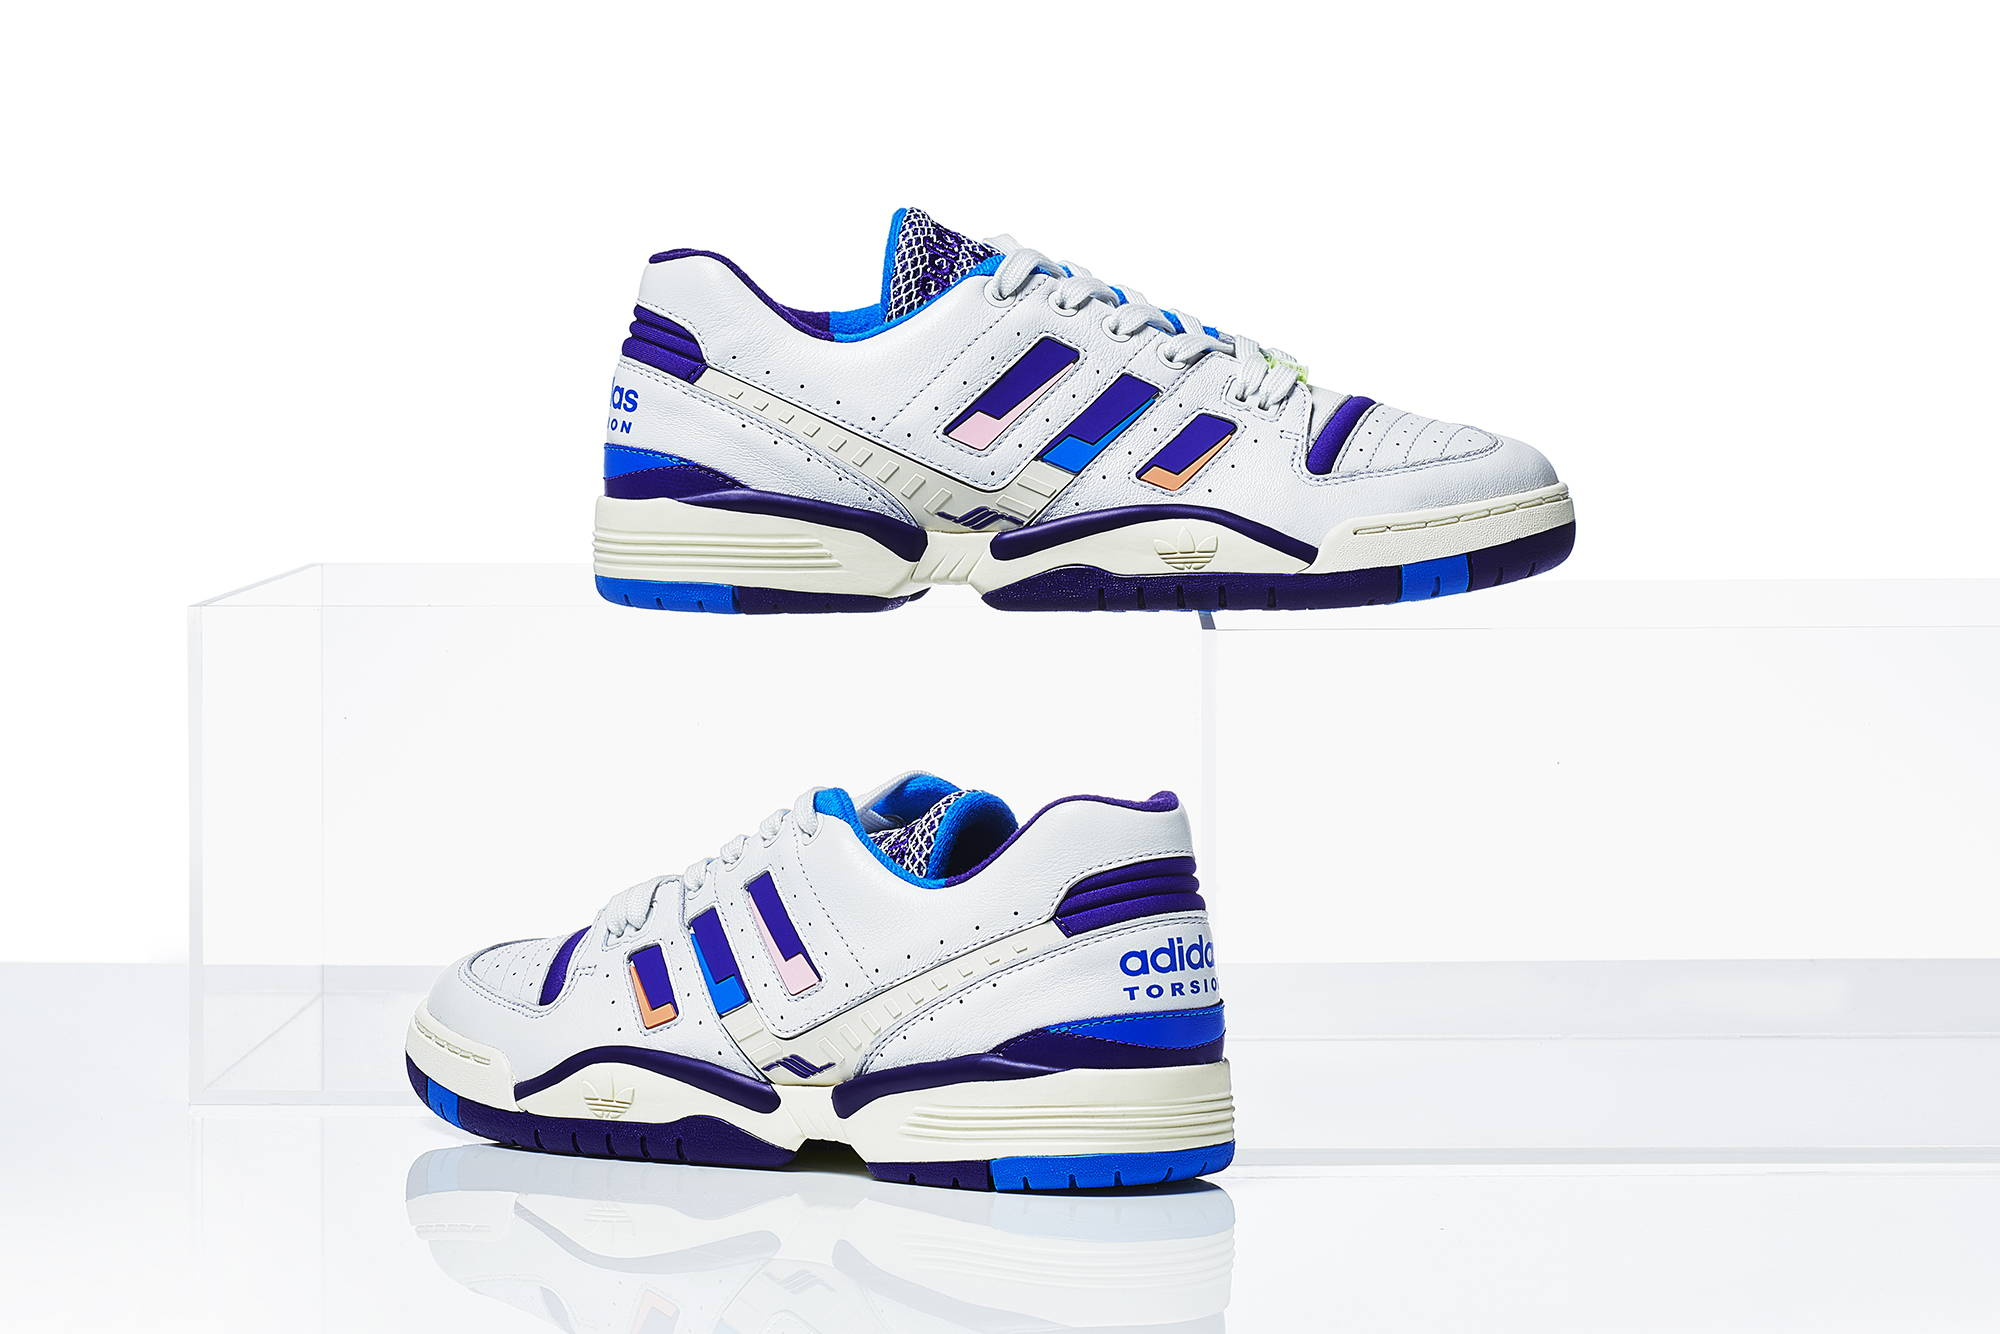 adidas Consortium: Torsion Edberg Comp